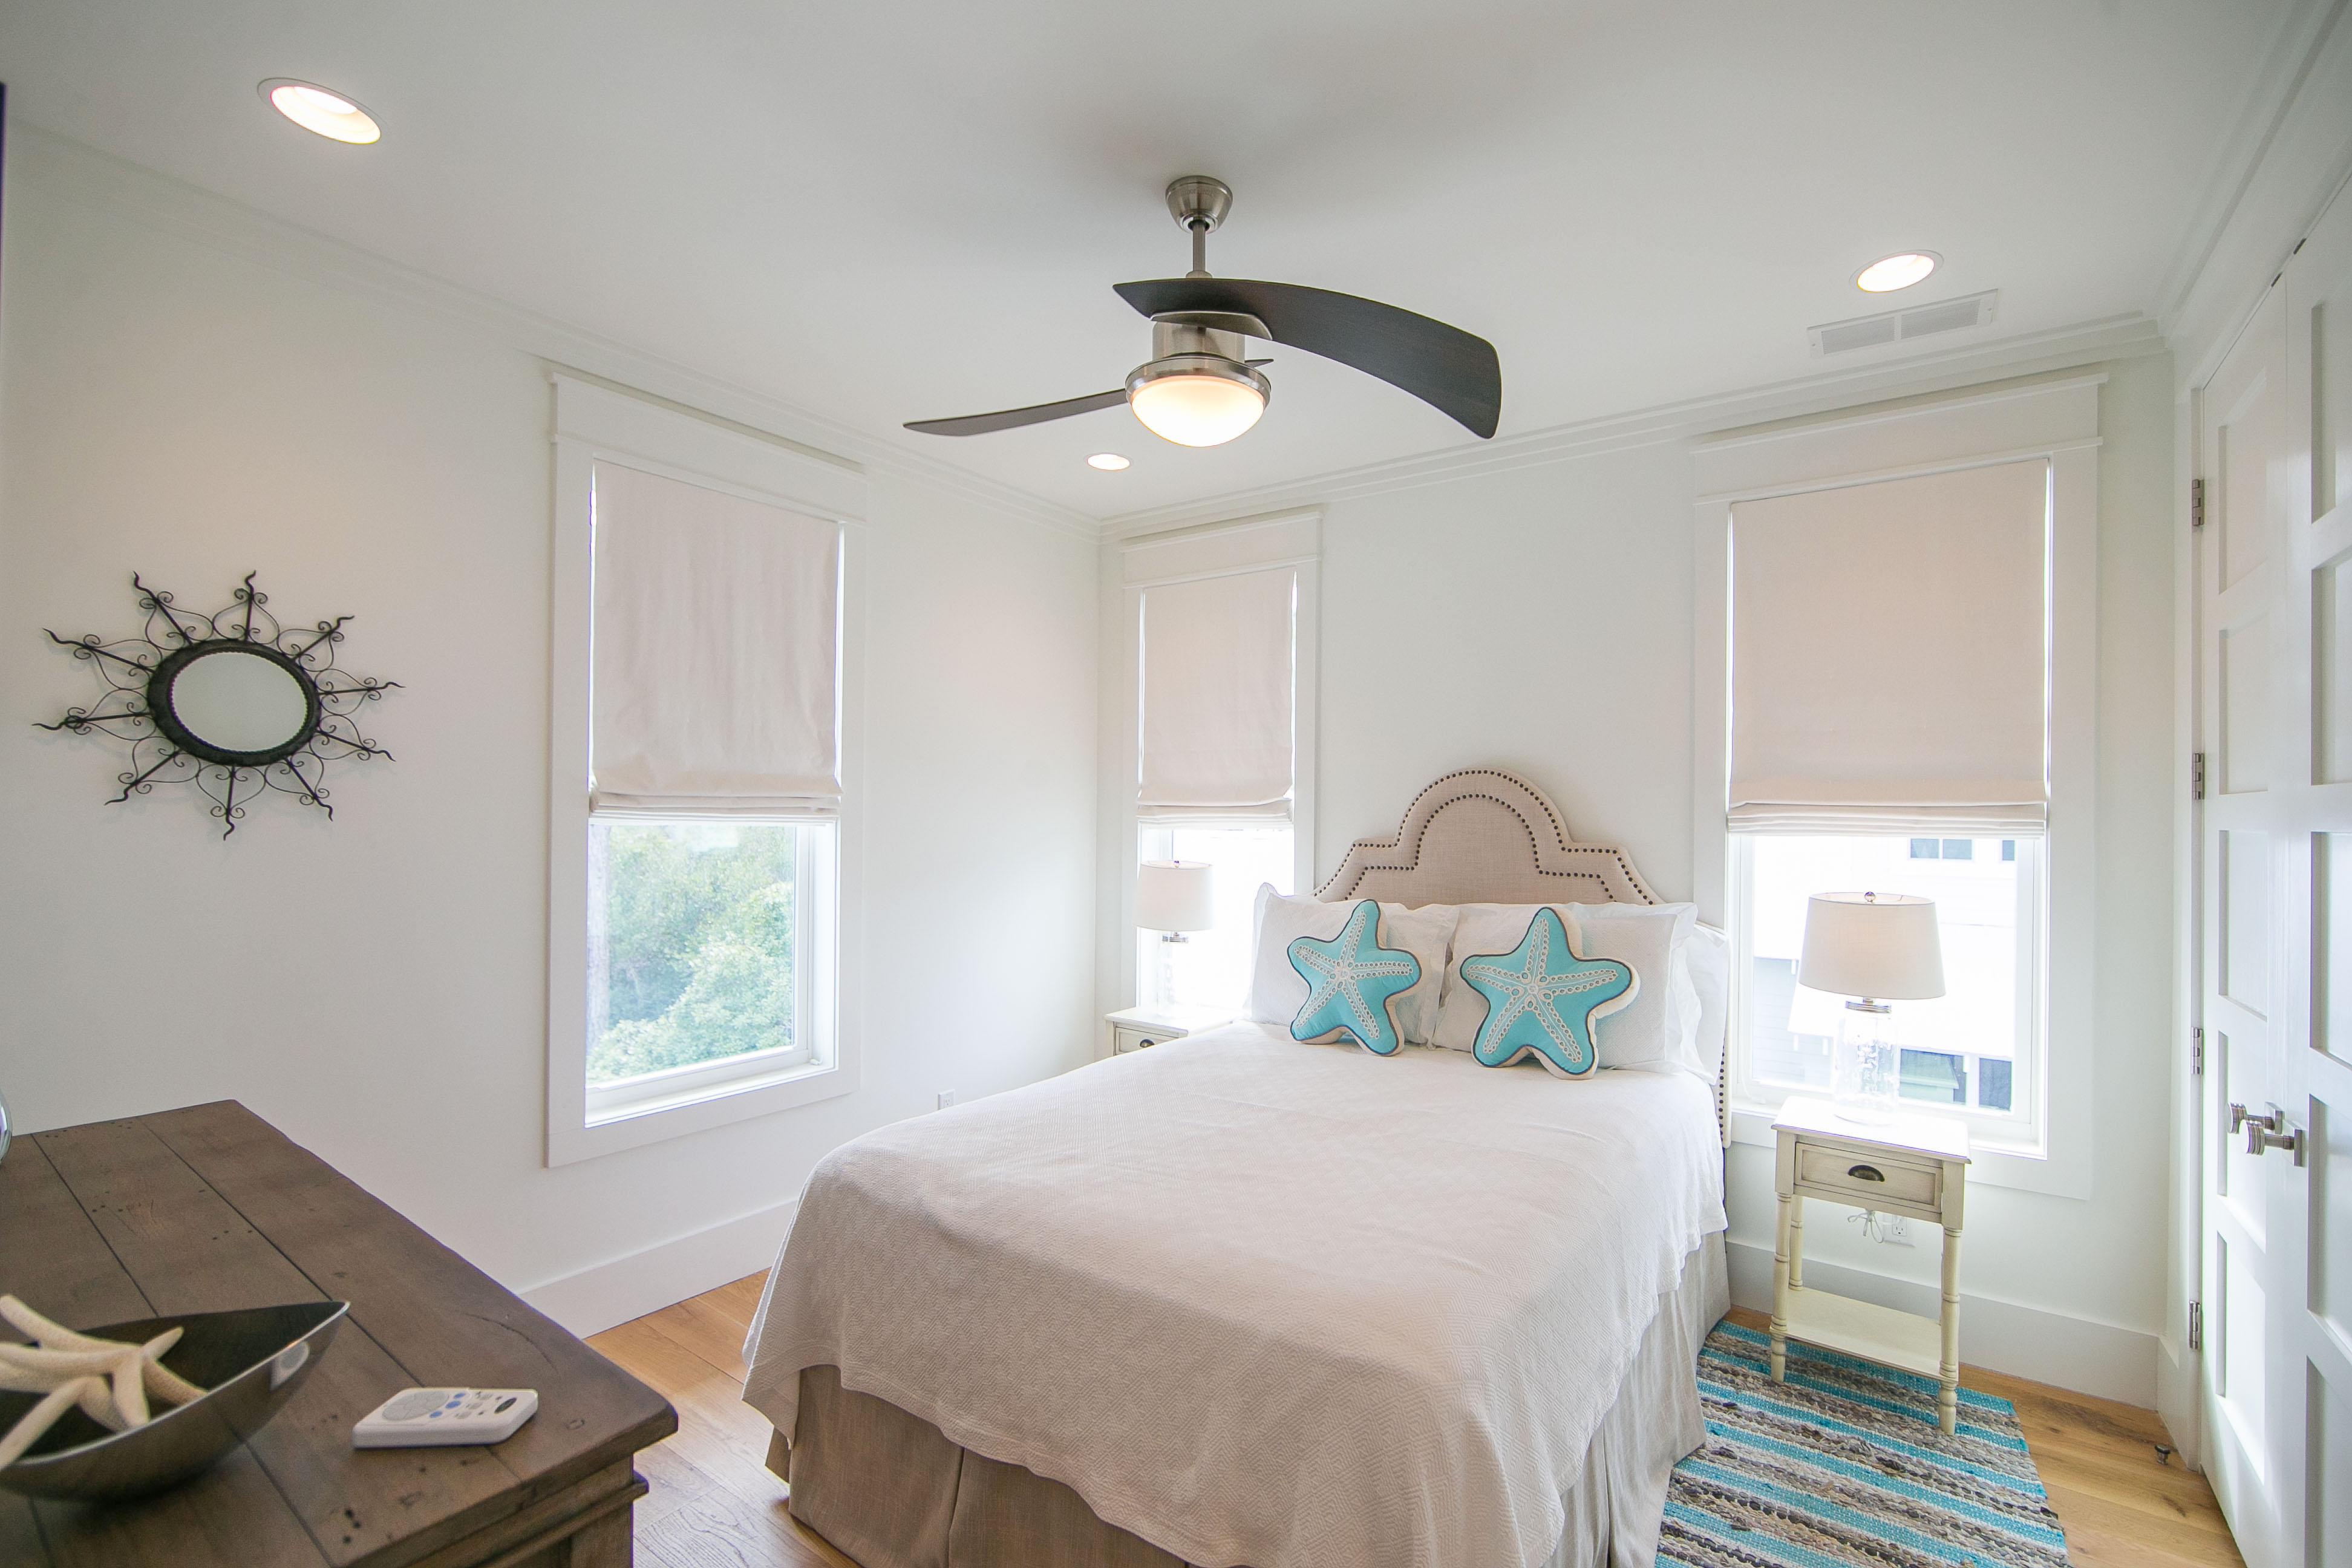 Guest bedroom 4 is located on the 2nd floor and has a queen sized bed and shares the hall bath.